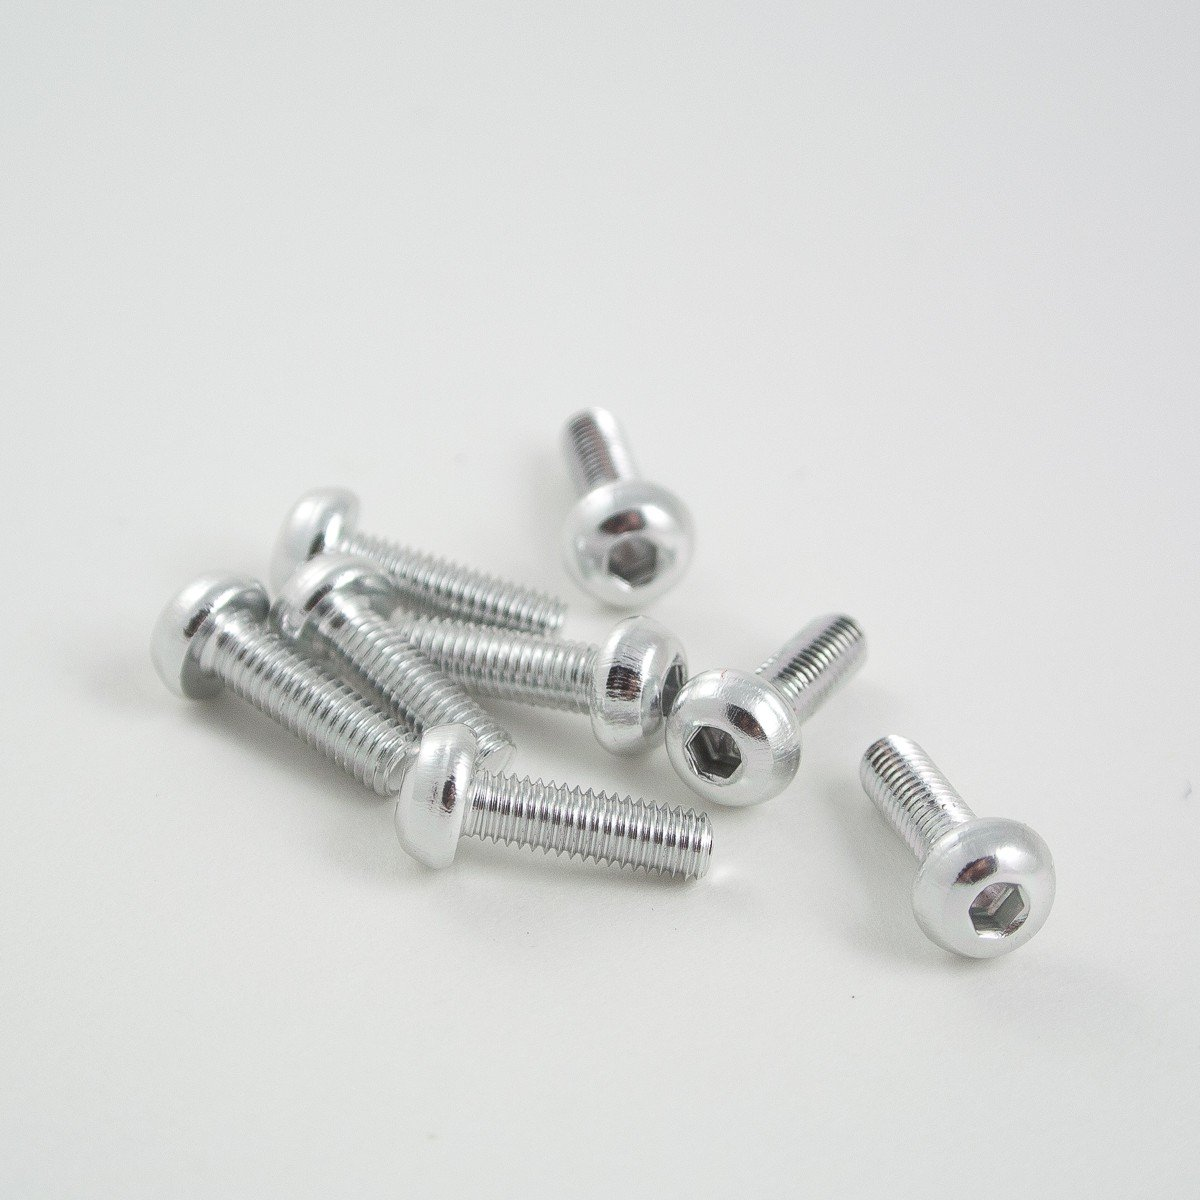 10mm M3 aluminium button head bolt 8pcs